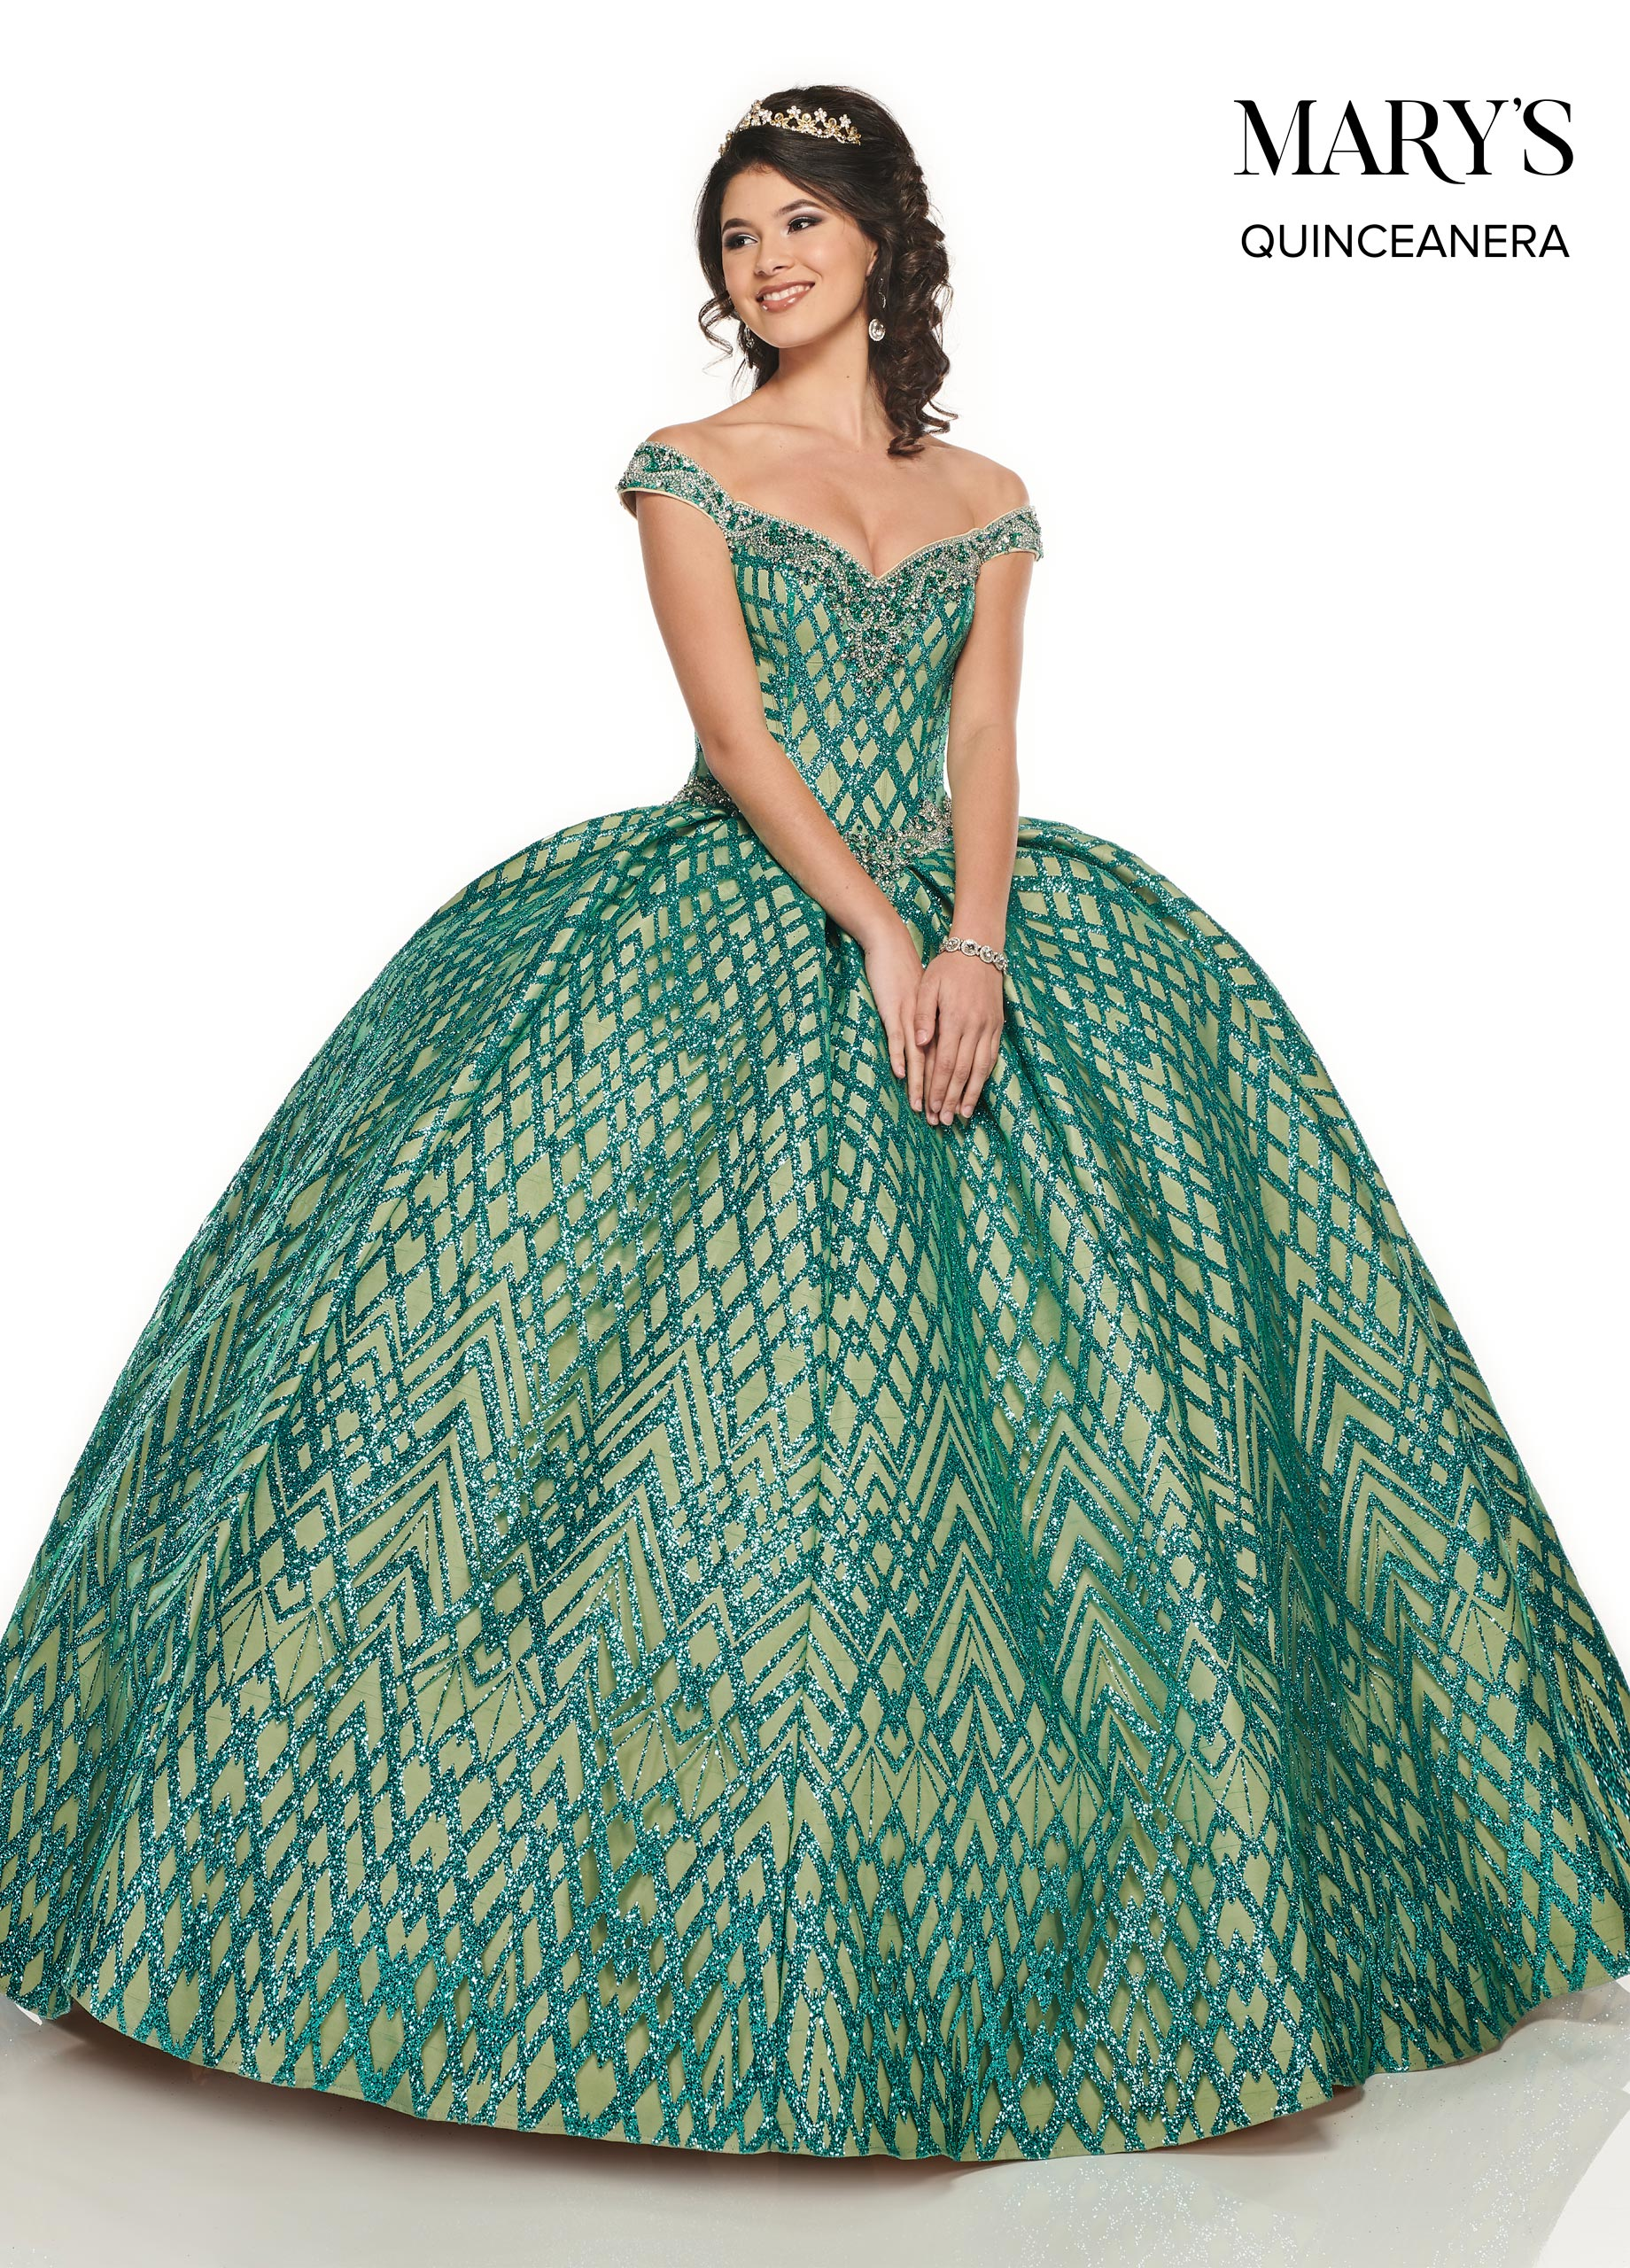 Marys Quinceanera Dresses | Mary's Quinceanera | Style - MQ2088